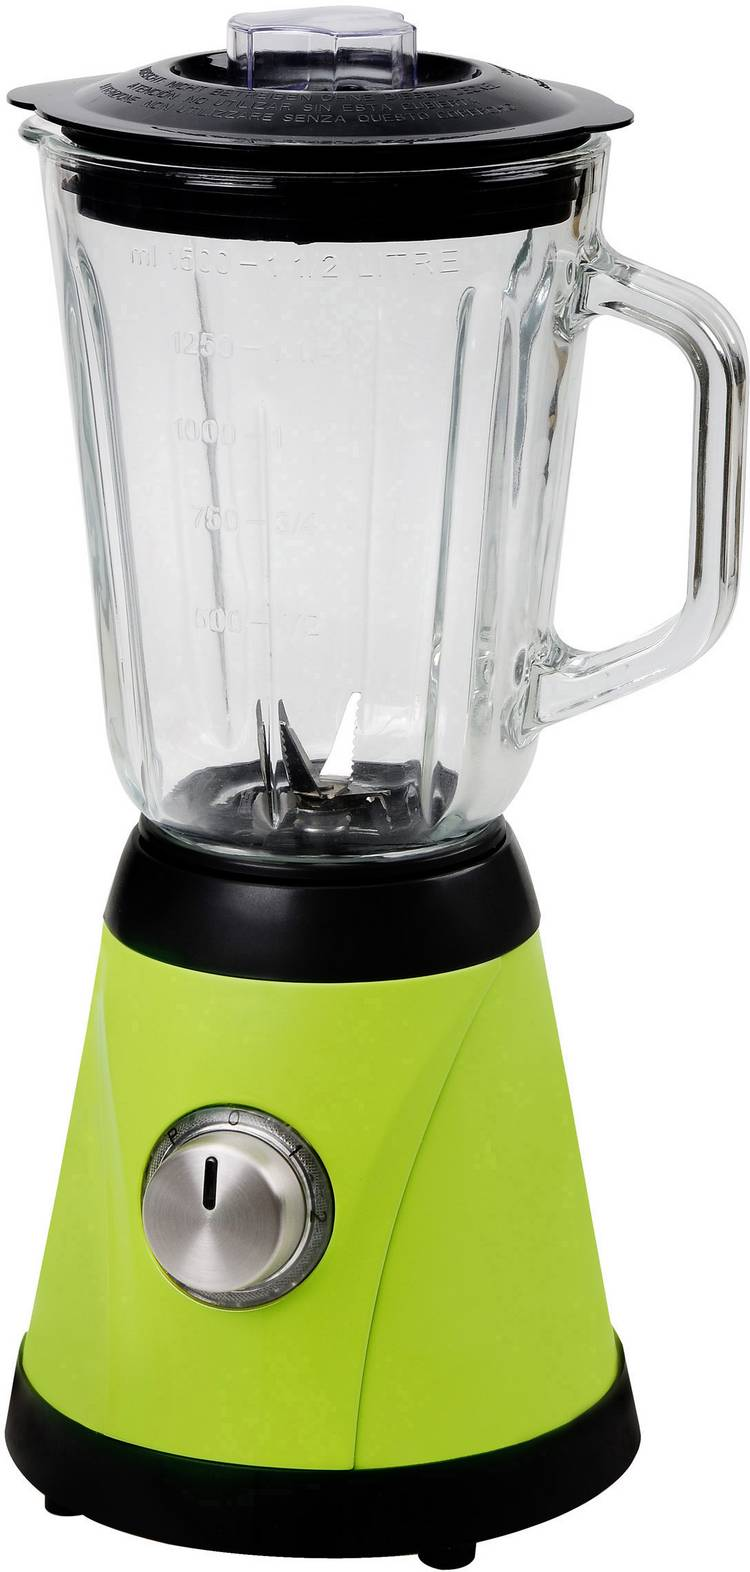 Image of Blender TKG Team Kalorik TKG BL 1002 AG 1.5 l